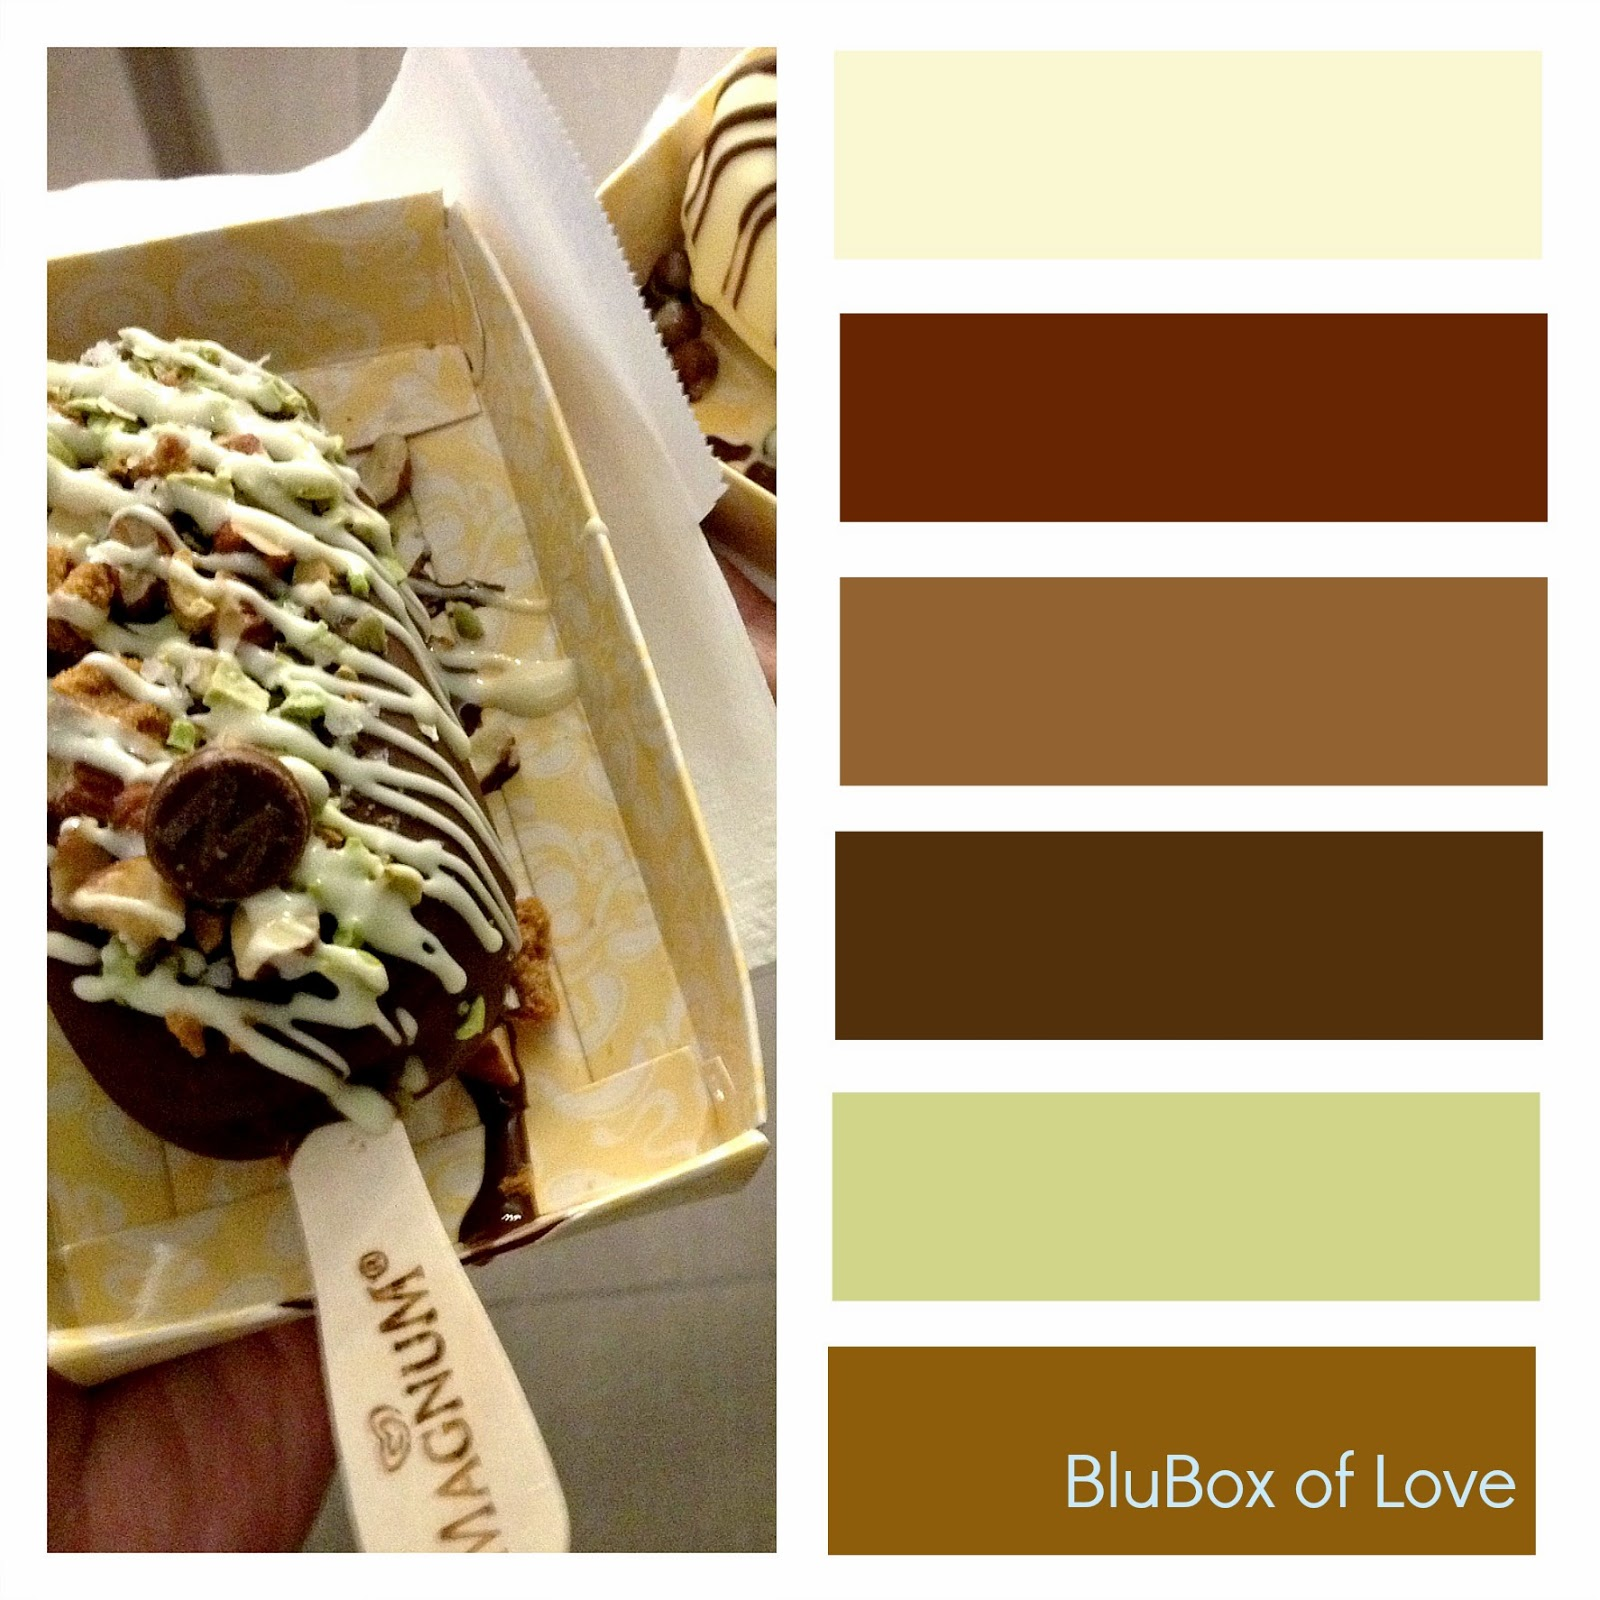 BluBox of Love: Colour Inspiration/Palette